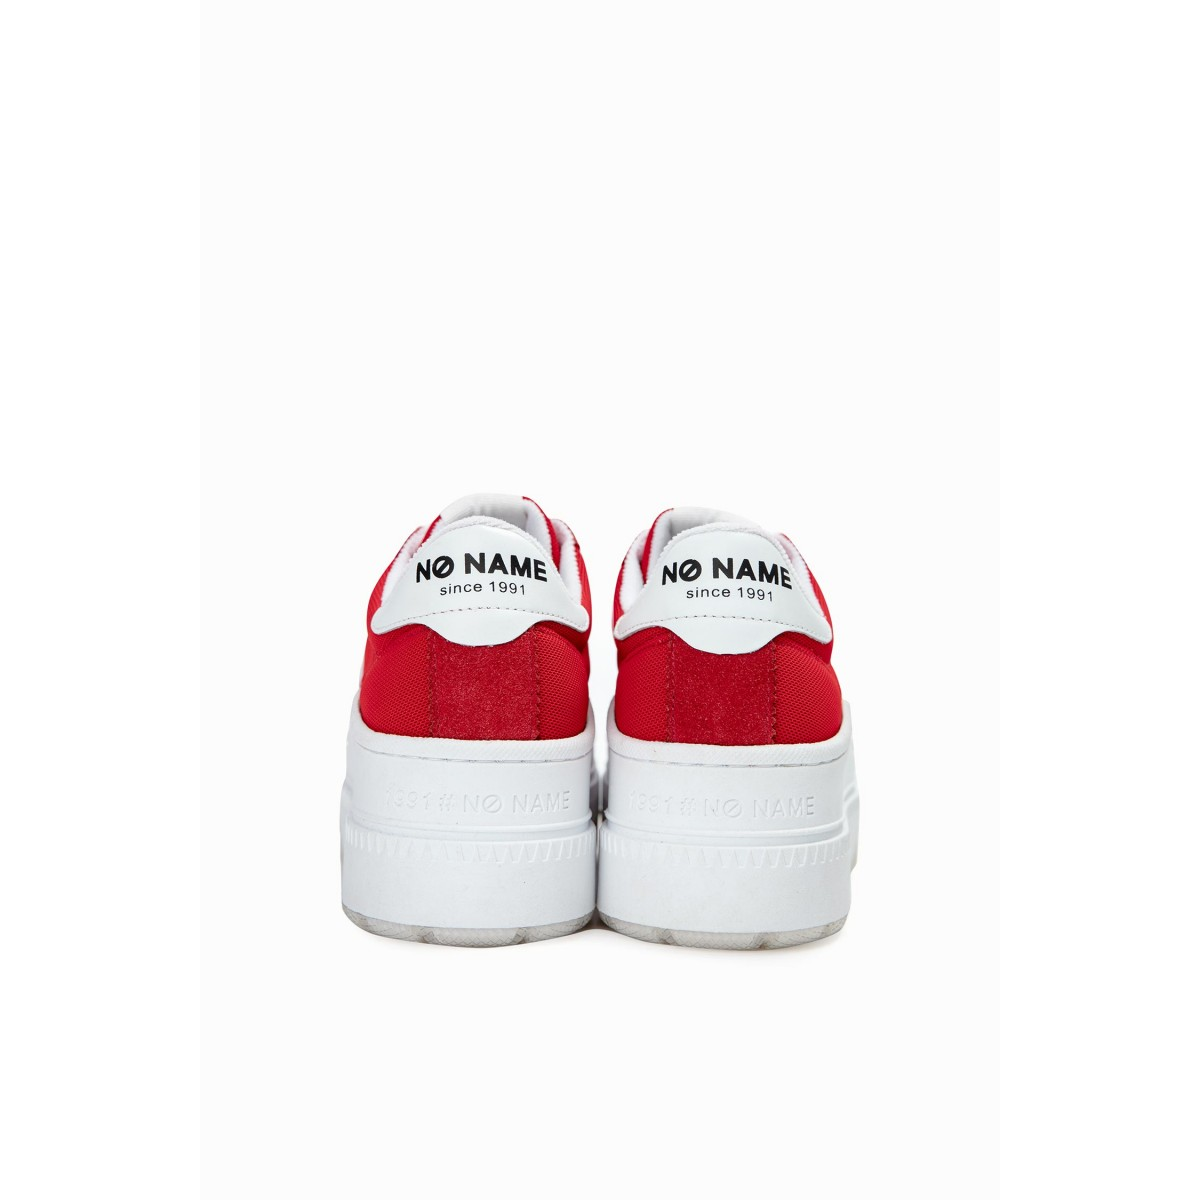 No Name JUMP TENNIS - MESH/SUEDE - RED/RED